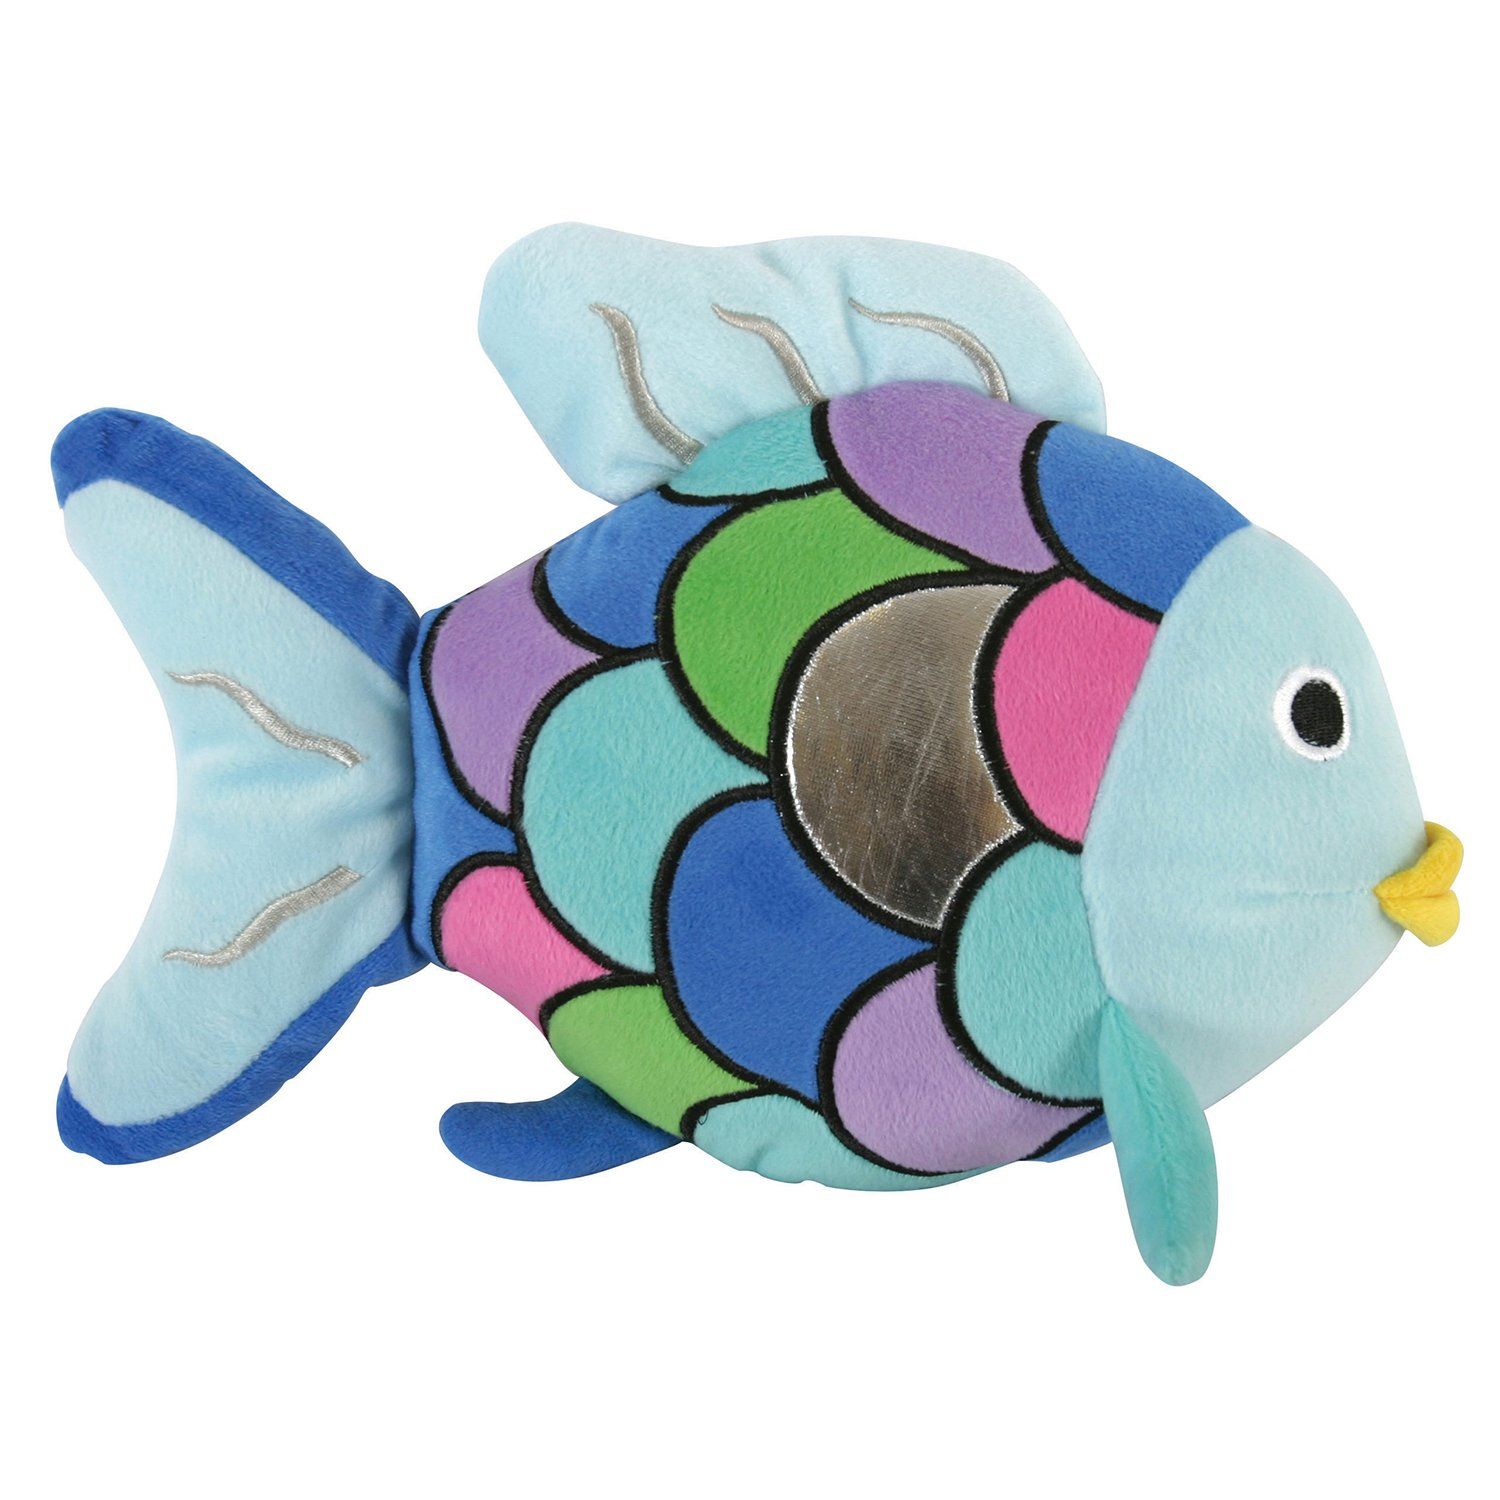 Stephan Baby Super-Soft Plush Pillow Toy, Rainbow Fish